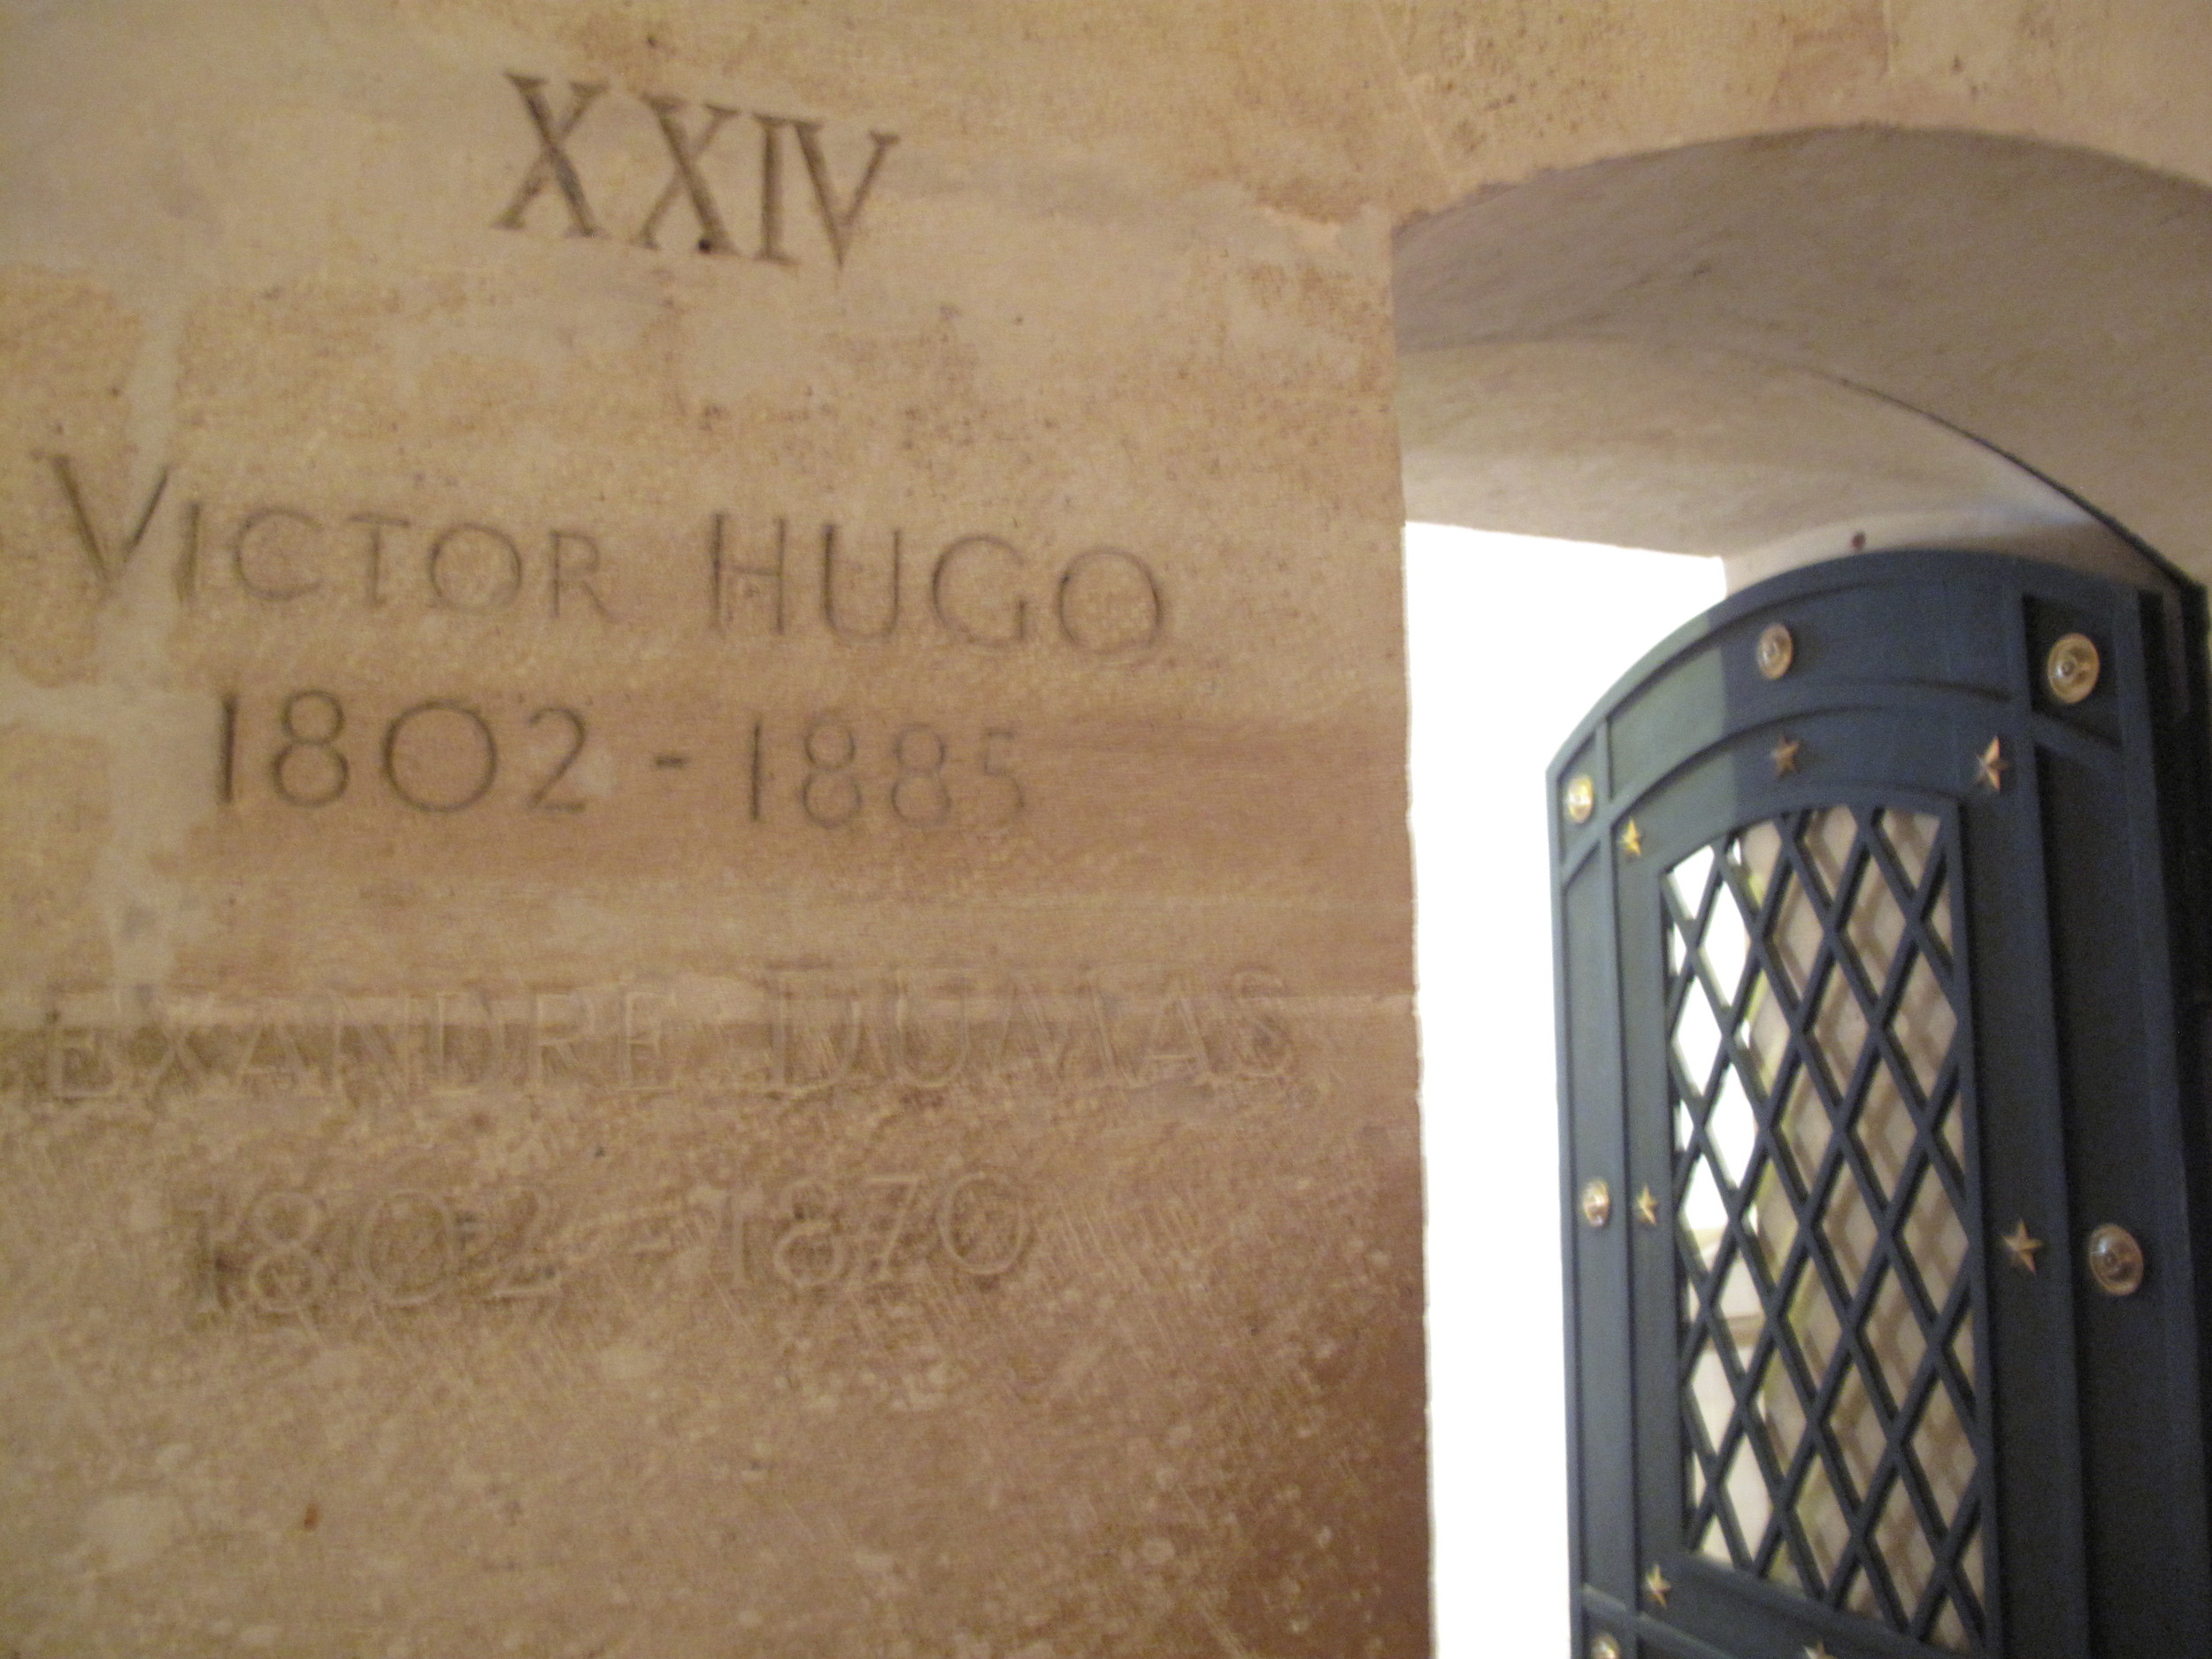 Tomb of Victor Hugo at the Pantheon